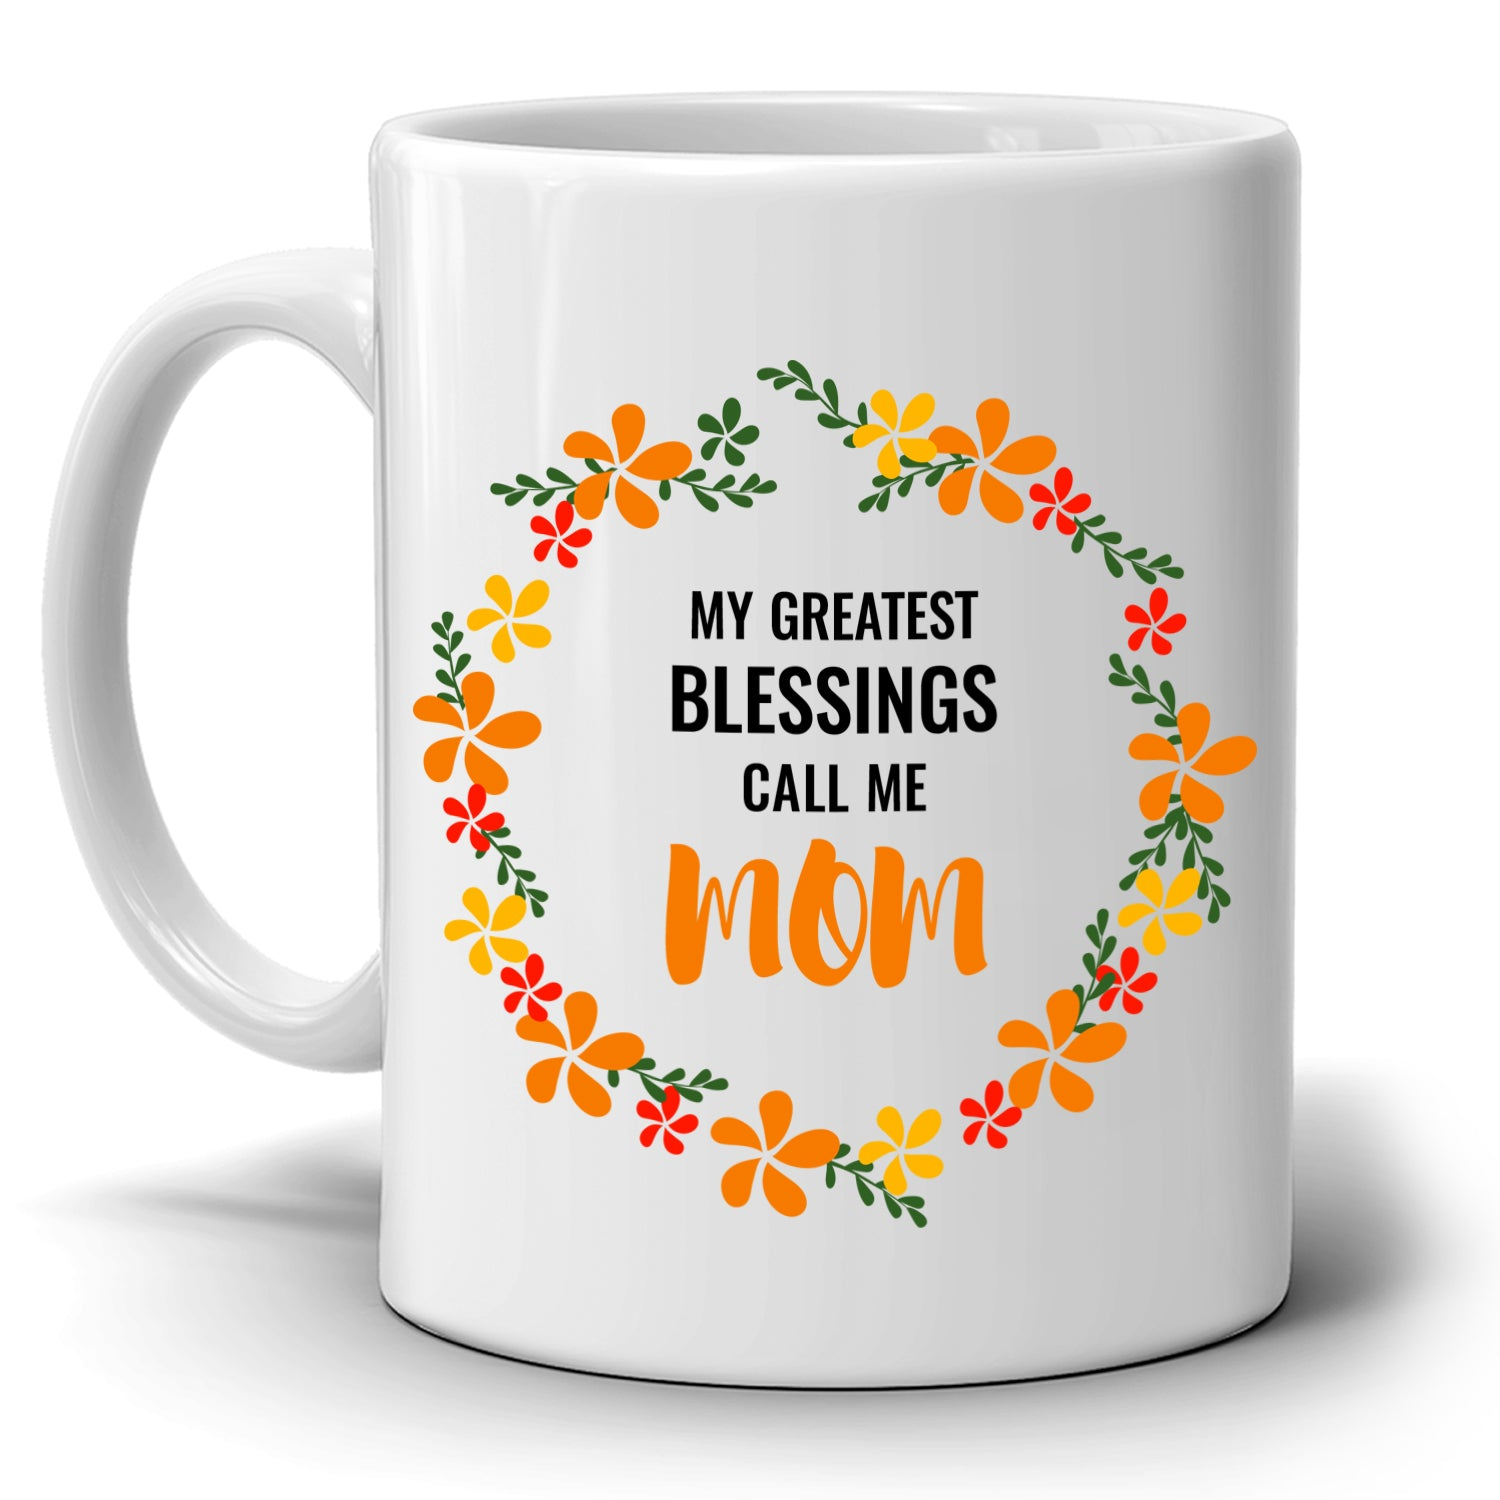 Inspirational Mothers Day And Birthday Gifts My Greatest Blessings Call Me Mom Printed On Both